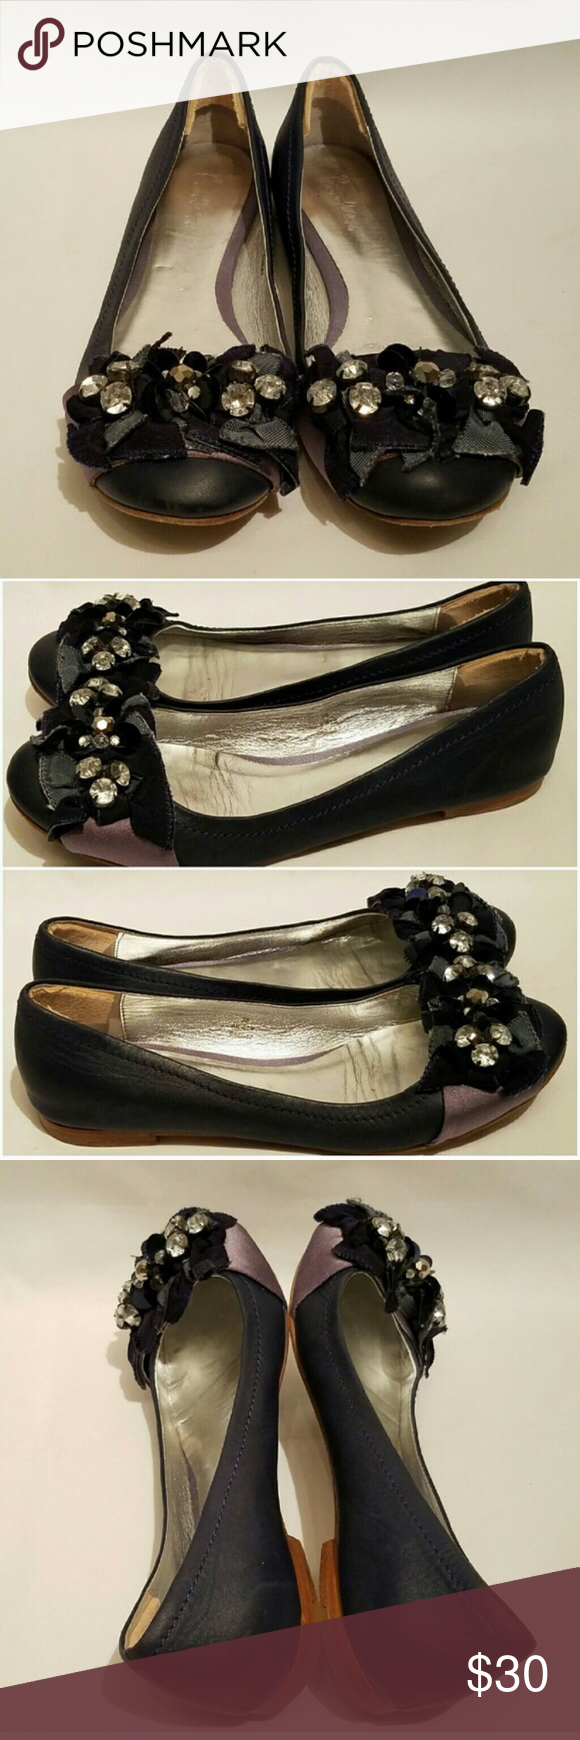 dc2a48e41a8 Boden Rhinestone Ballet Flats So sad these didn t fit!! Purchased from  Poshmark